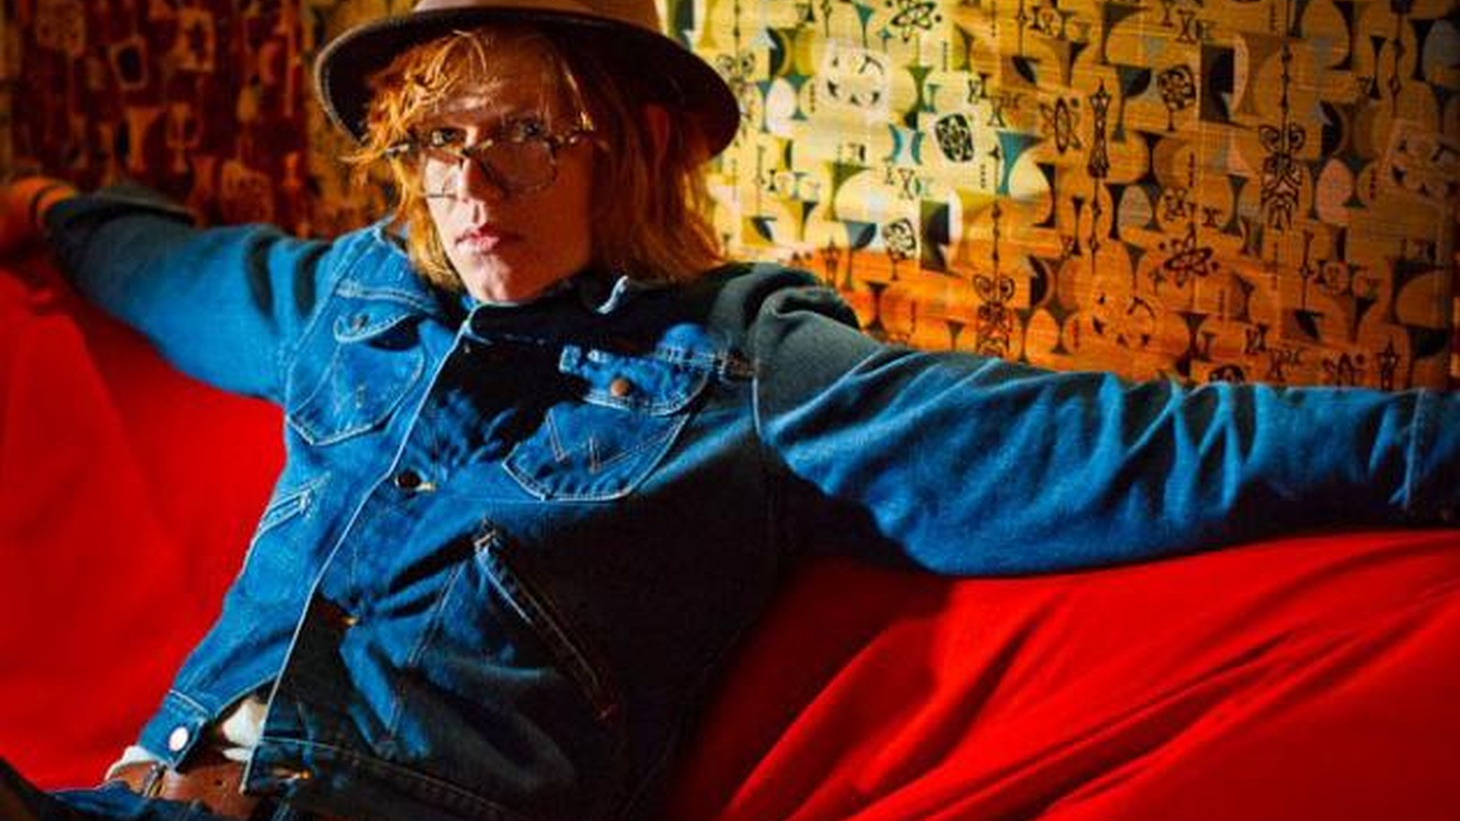 His star has been rising steadily since his debut but we think it's time for the whole world to take notice of Brett Dennen's expert pop songcraft...